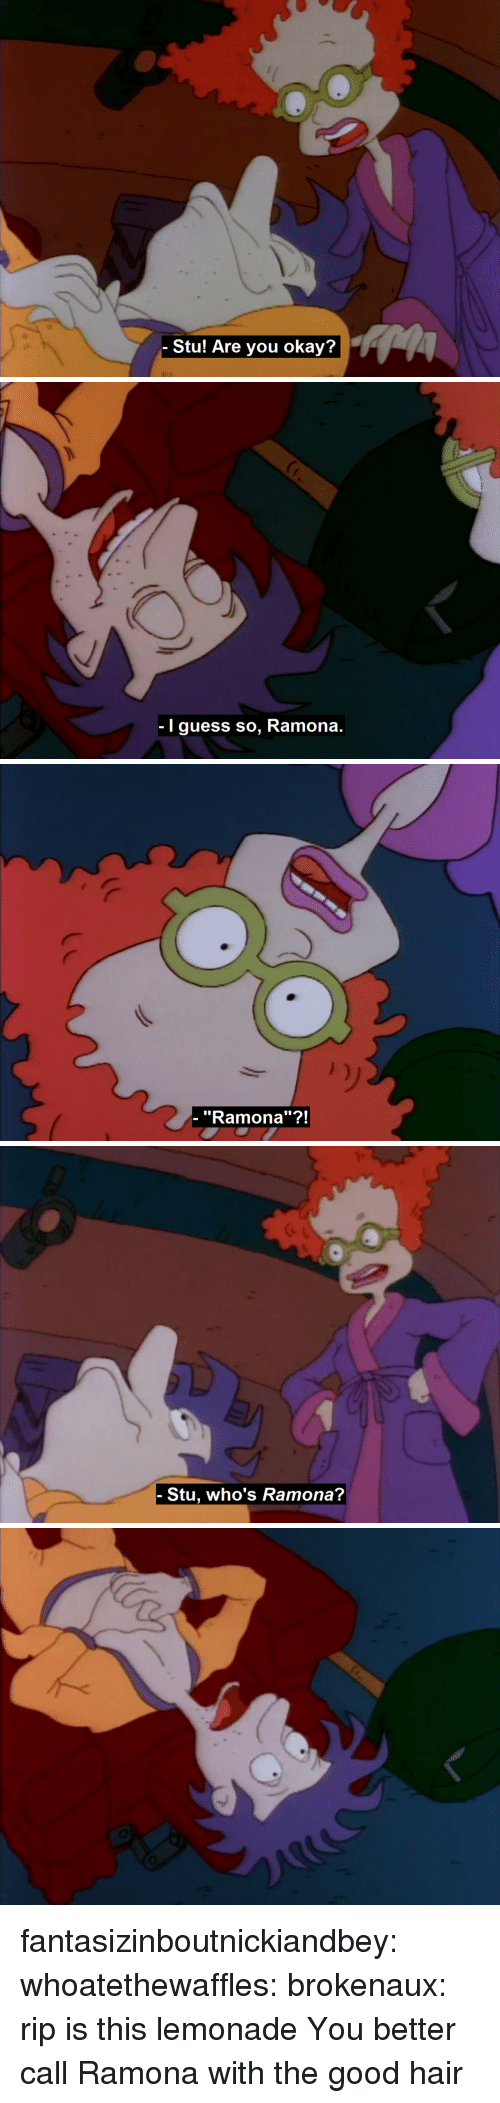 "Tumblr, Blog, and Good: Stu! Are you okay?   I guess so, Ramona.   - ""Ramona""?!   Stu, who's Ramona? fantasizinboutnickiandbey: whoatethewaffles:   brokenaux:  rip   is this lemonade   You better call Ramona with the good hair"